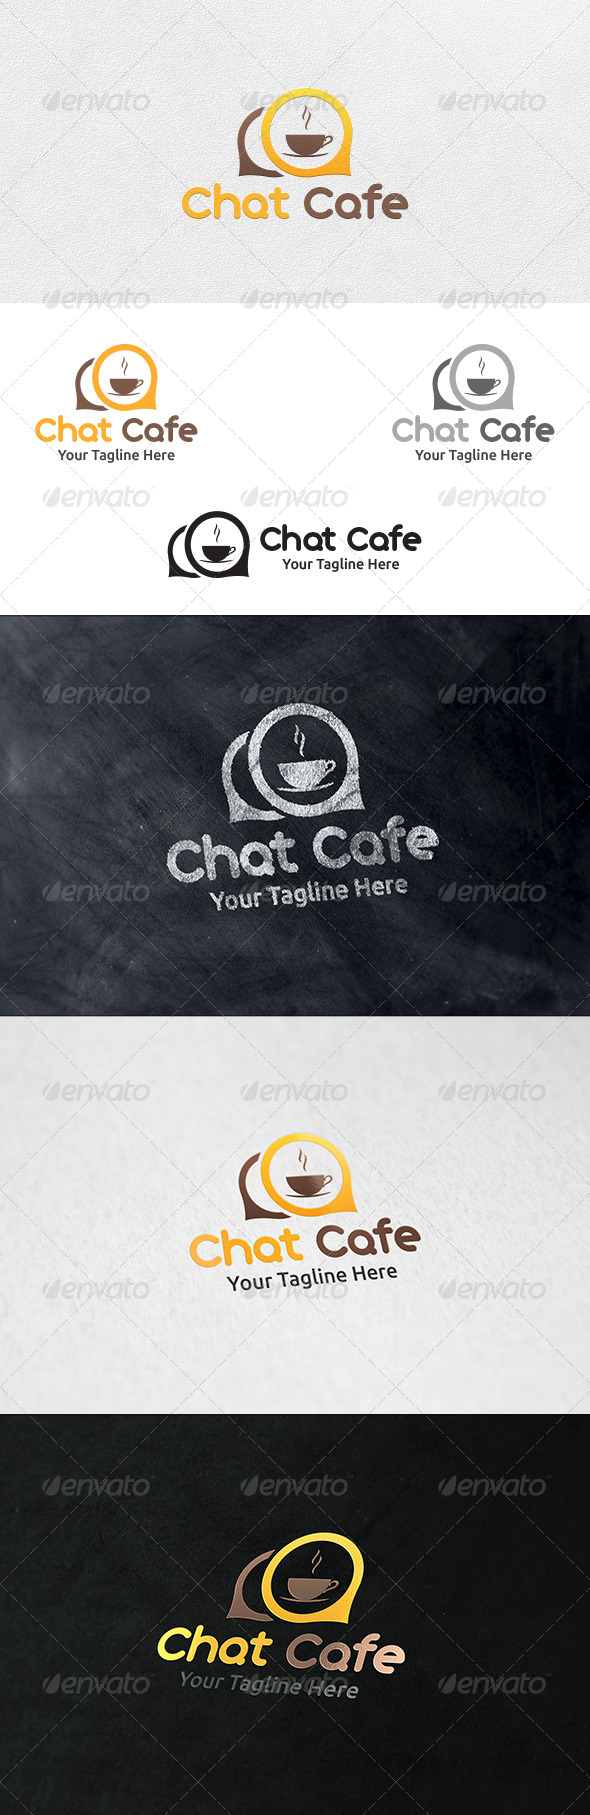 GraphicRiver Chat Cafe Logo Template 6963606